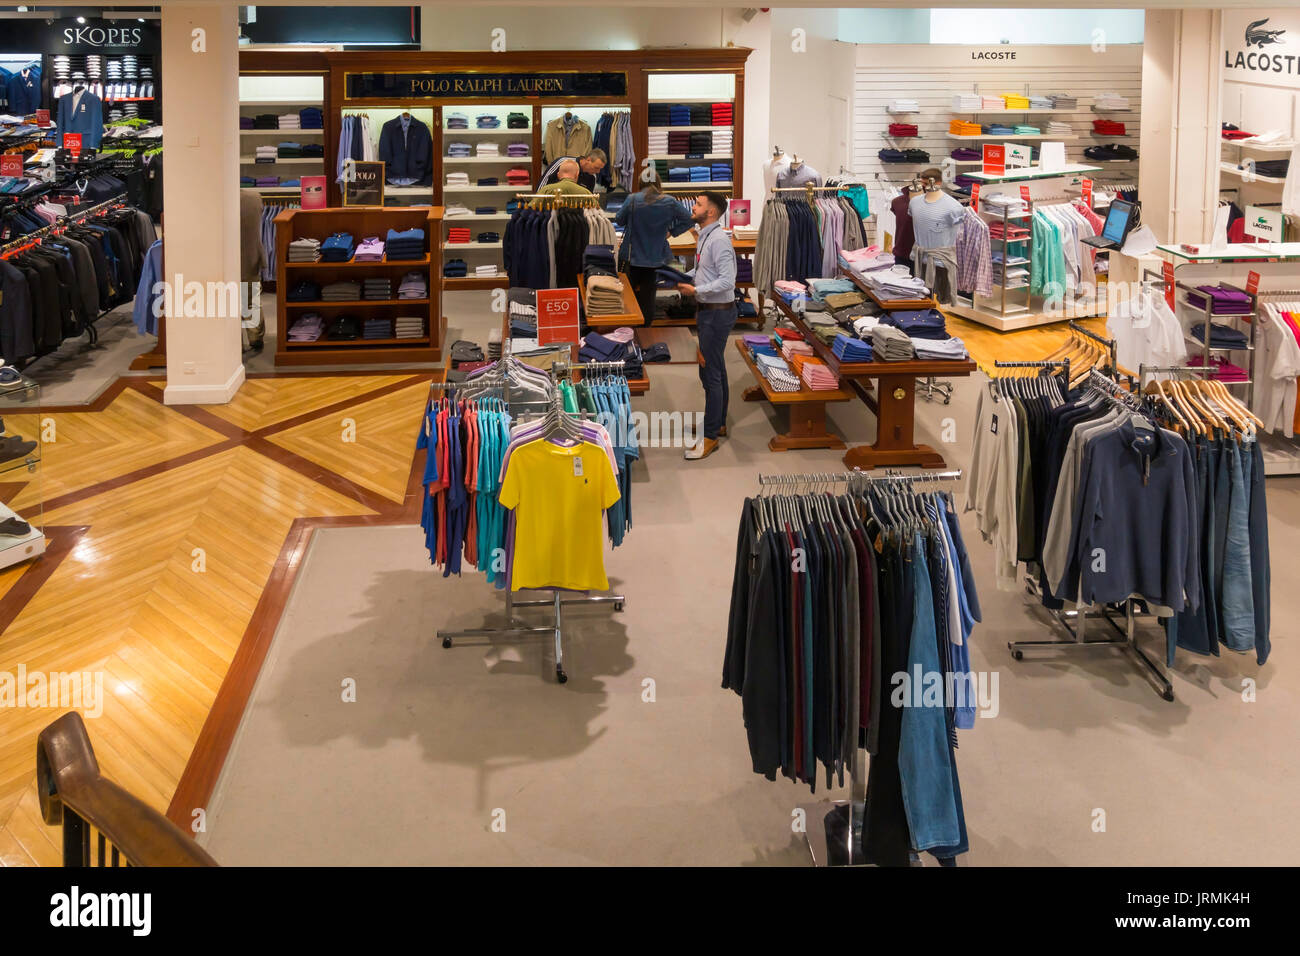 Department store mens fashion clothing department with customers buying summer sale clothing - Stock Image